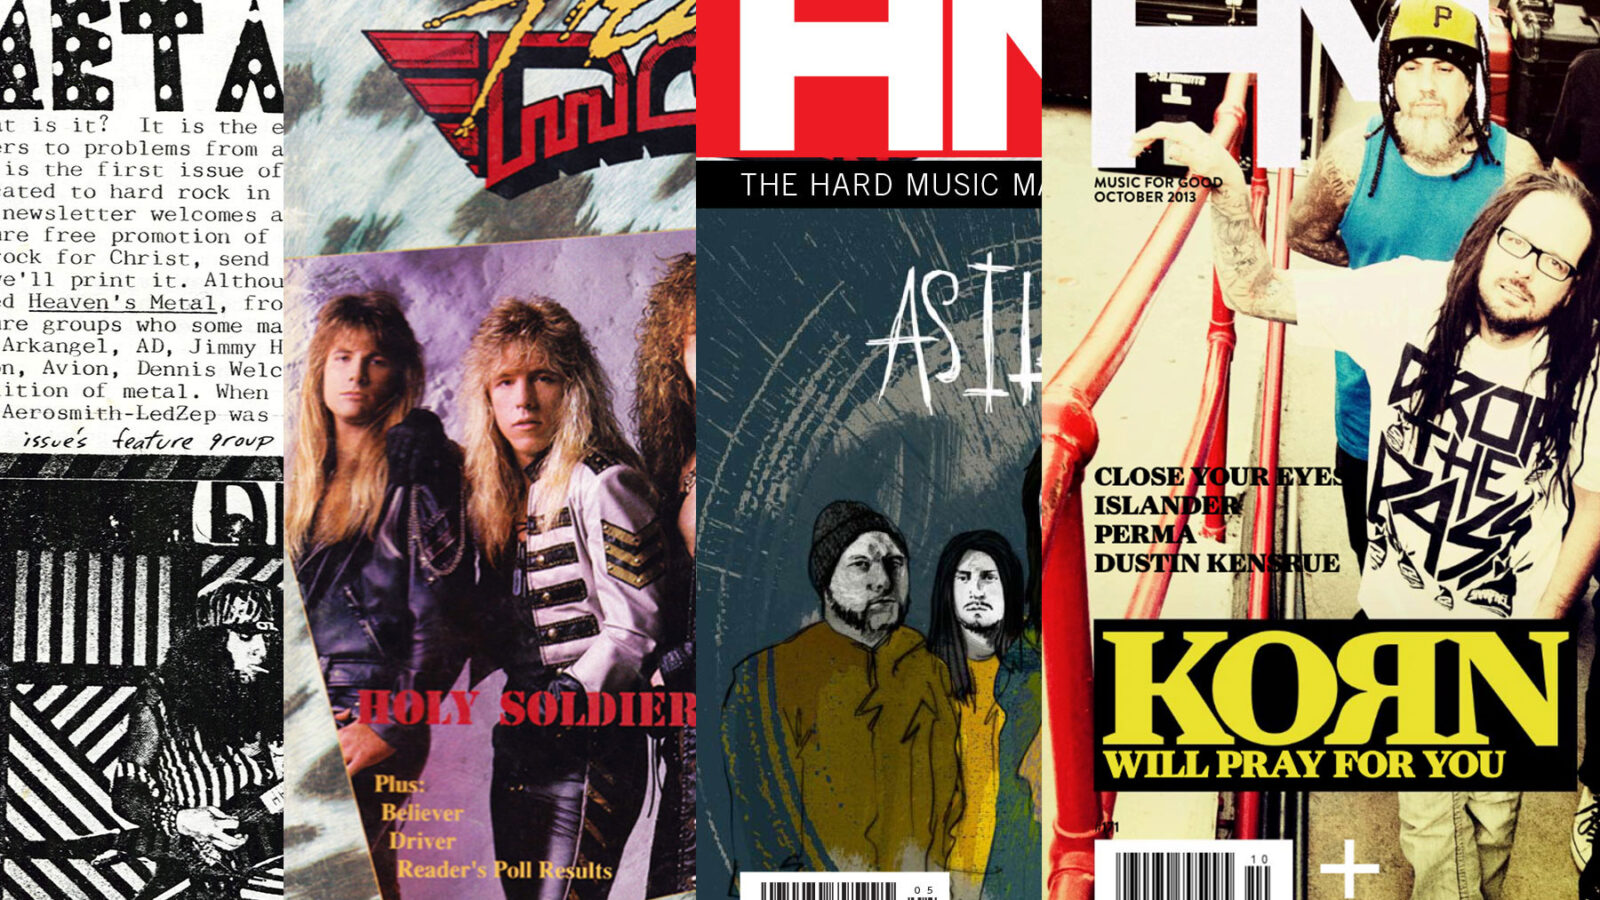 HM covers from over the years